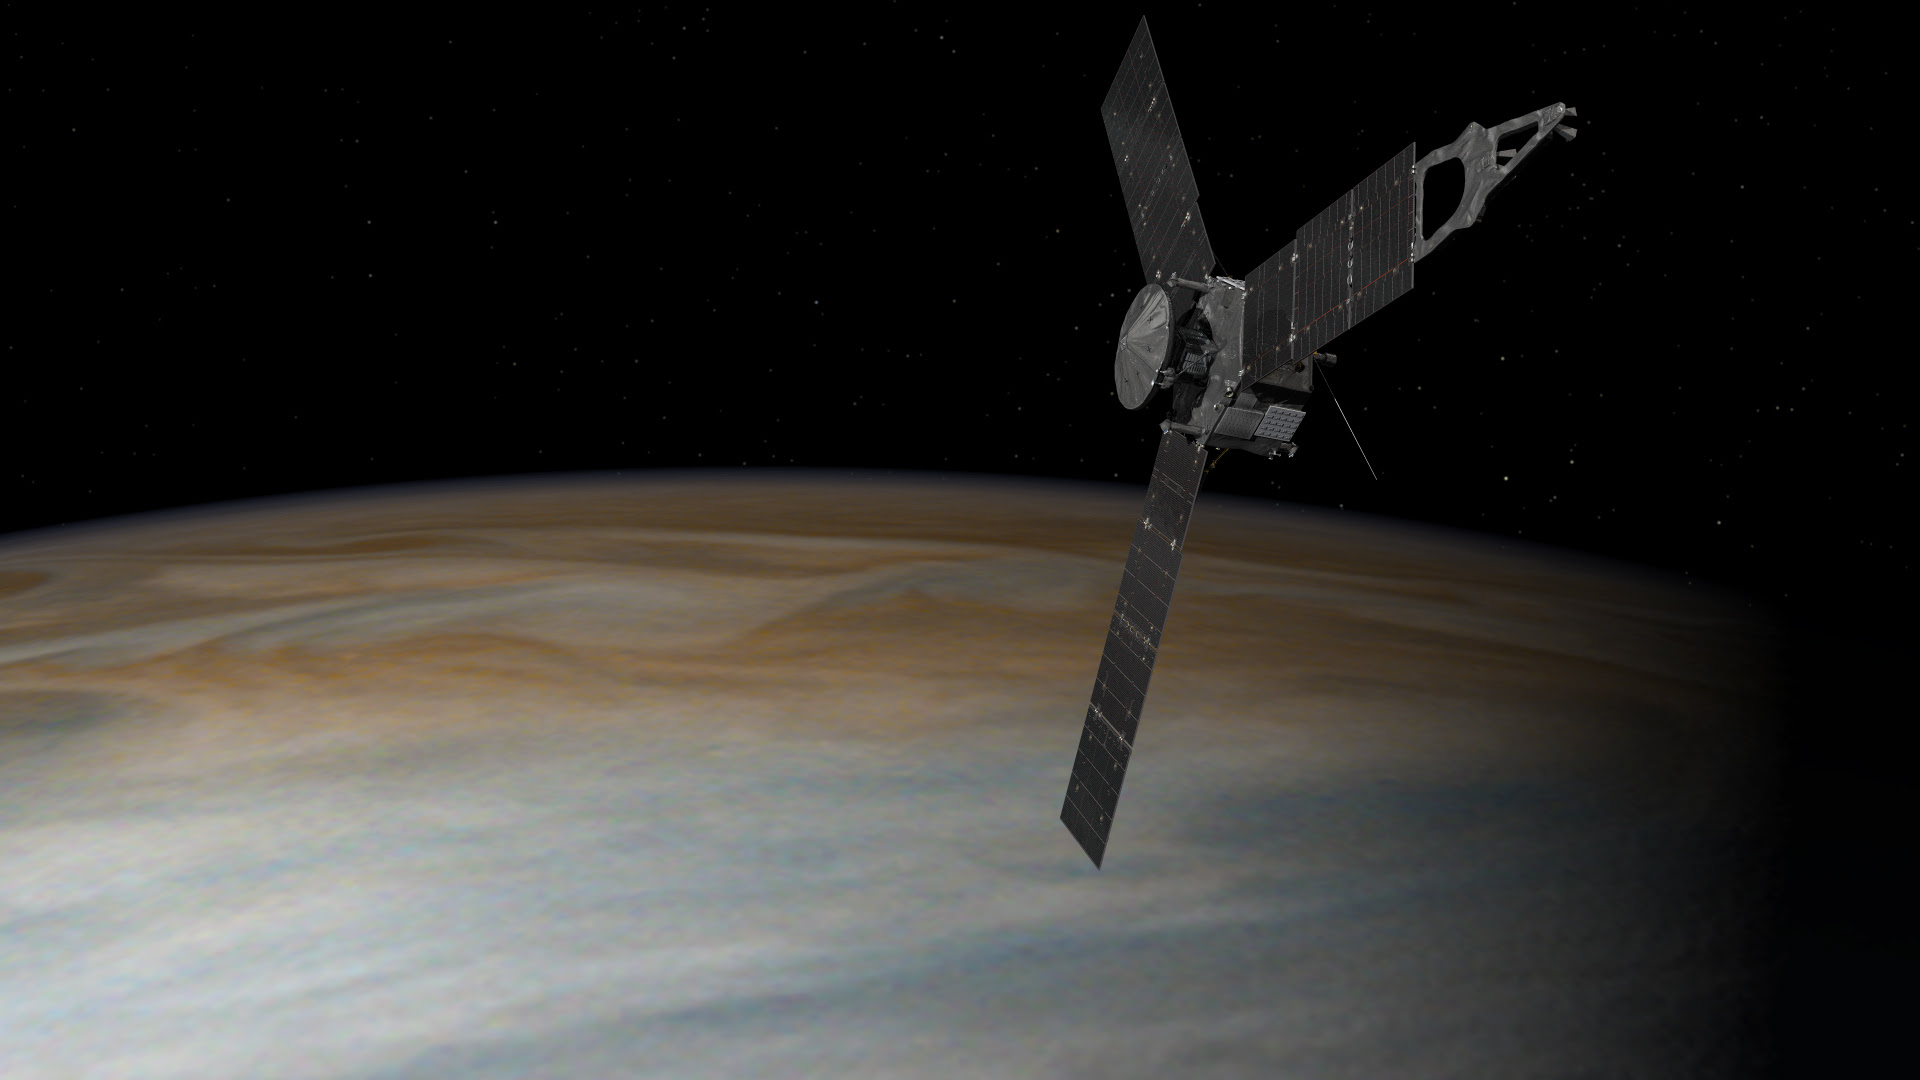 Juno Spacecraft's July 4 Jupiter Arrival: What to Expect